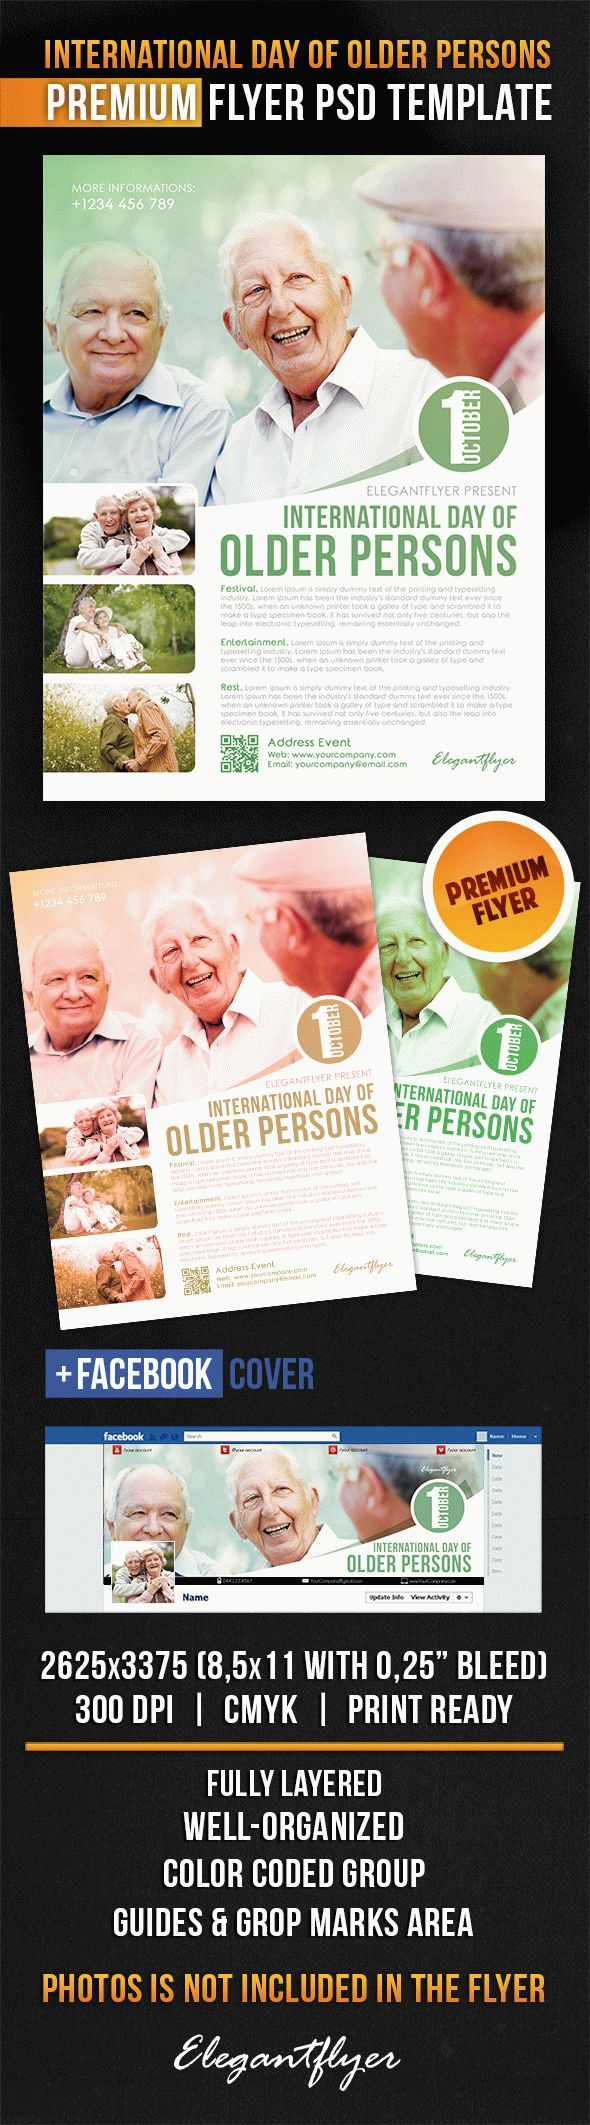 International Day of Older Persons Flyer